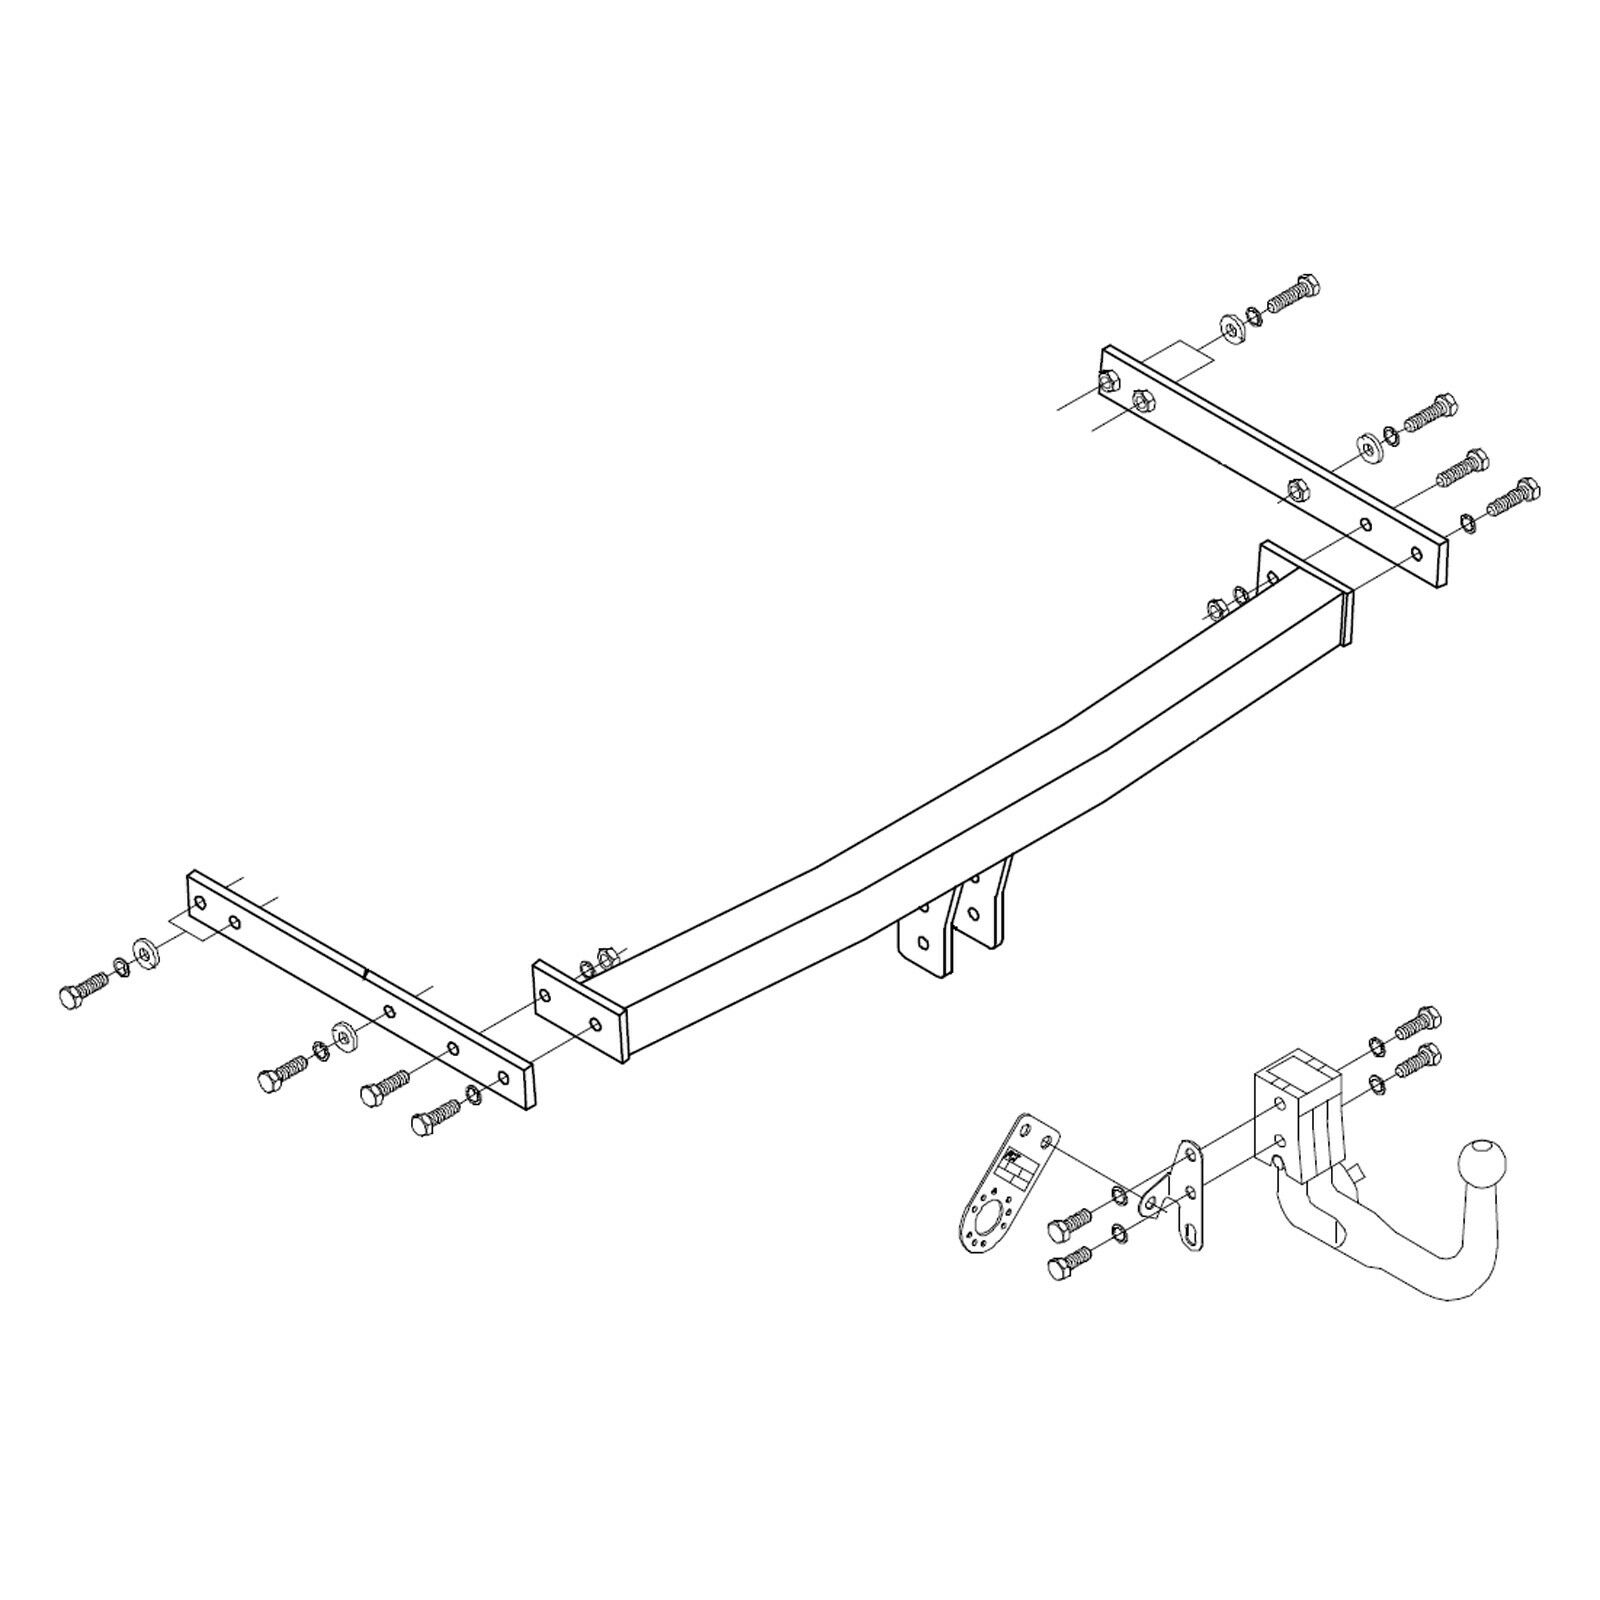 hight resolution of details about towbar for skoda octavia estate 2005 2013 detachable swan neck tow bar